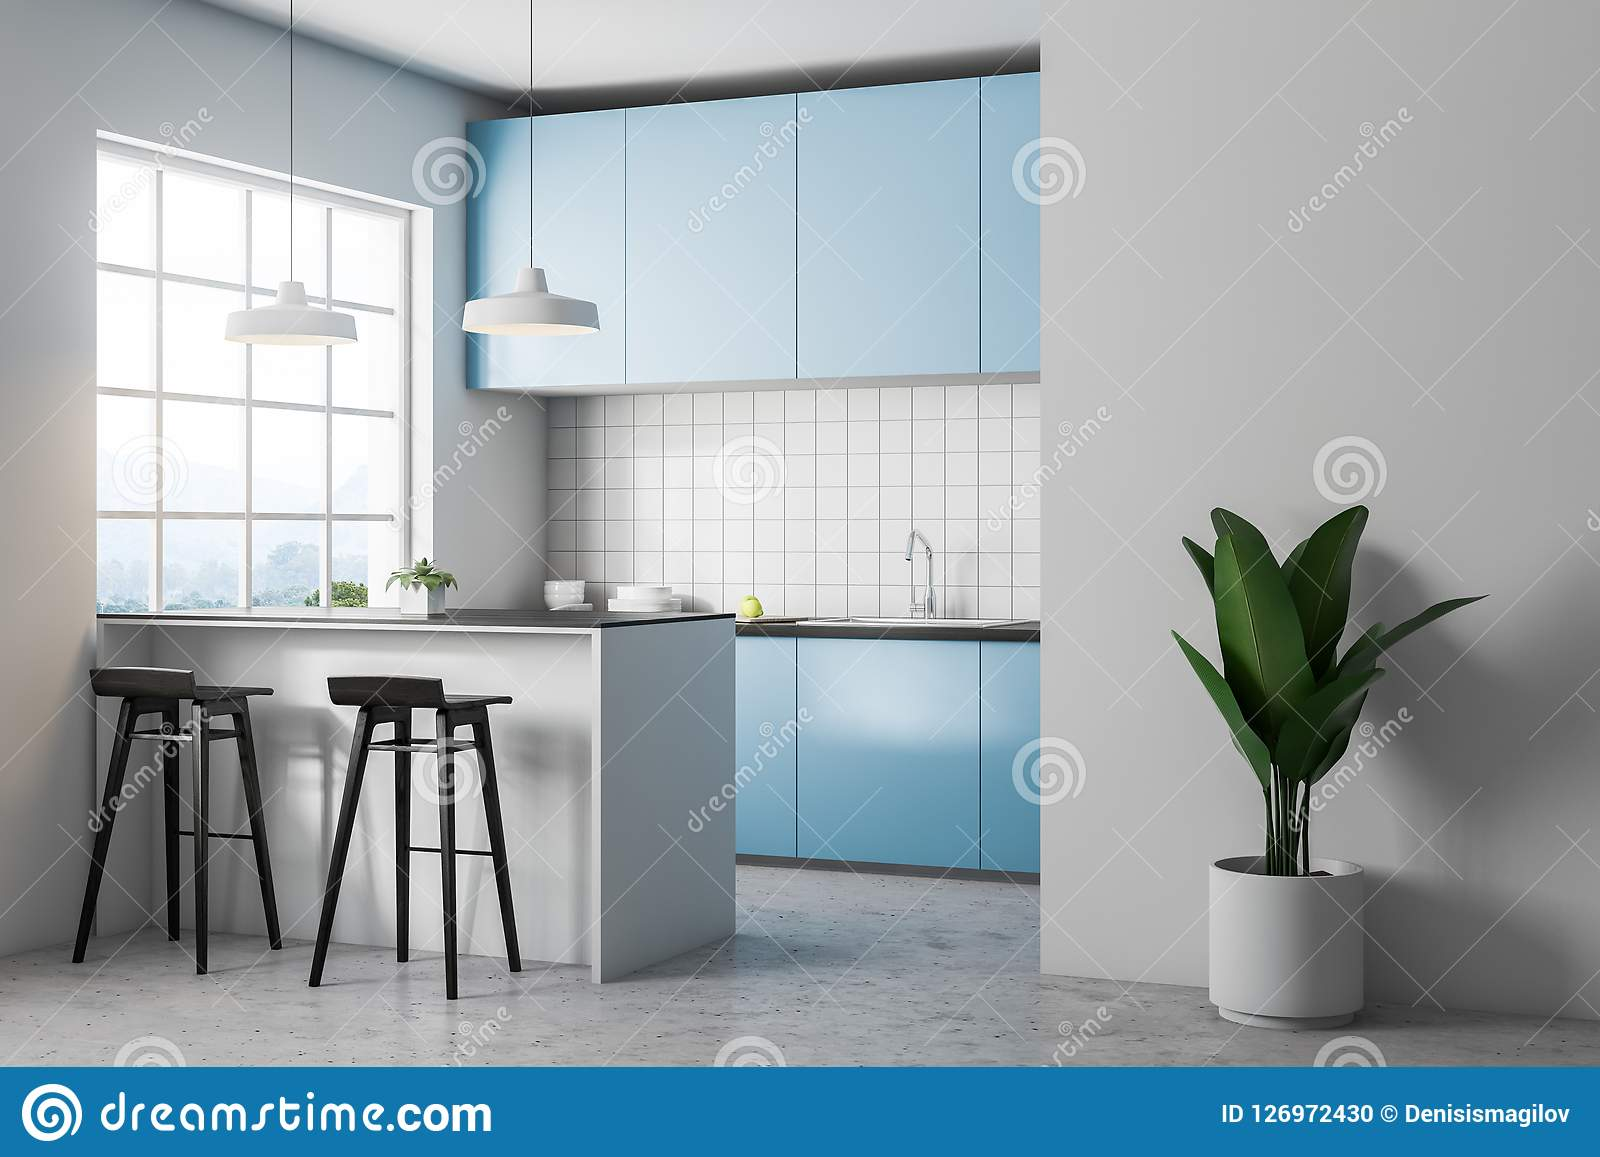 White Tile Kitchen Corner Blue Countertops Stock Illustration Illustration Of Eating Luxury 126972430